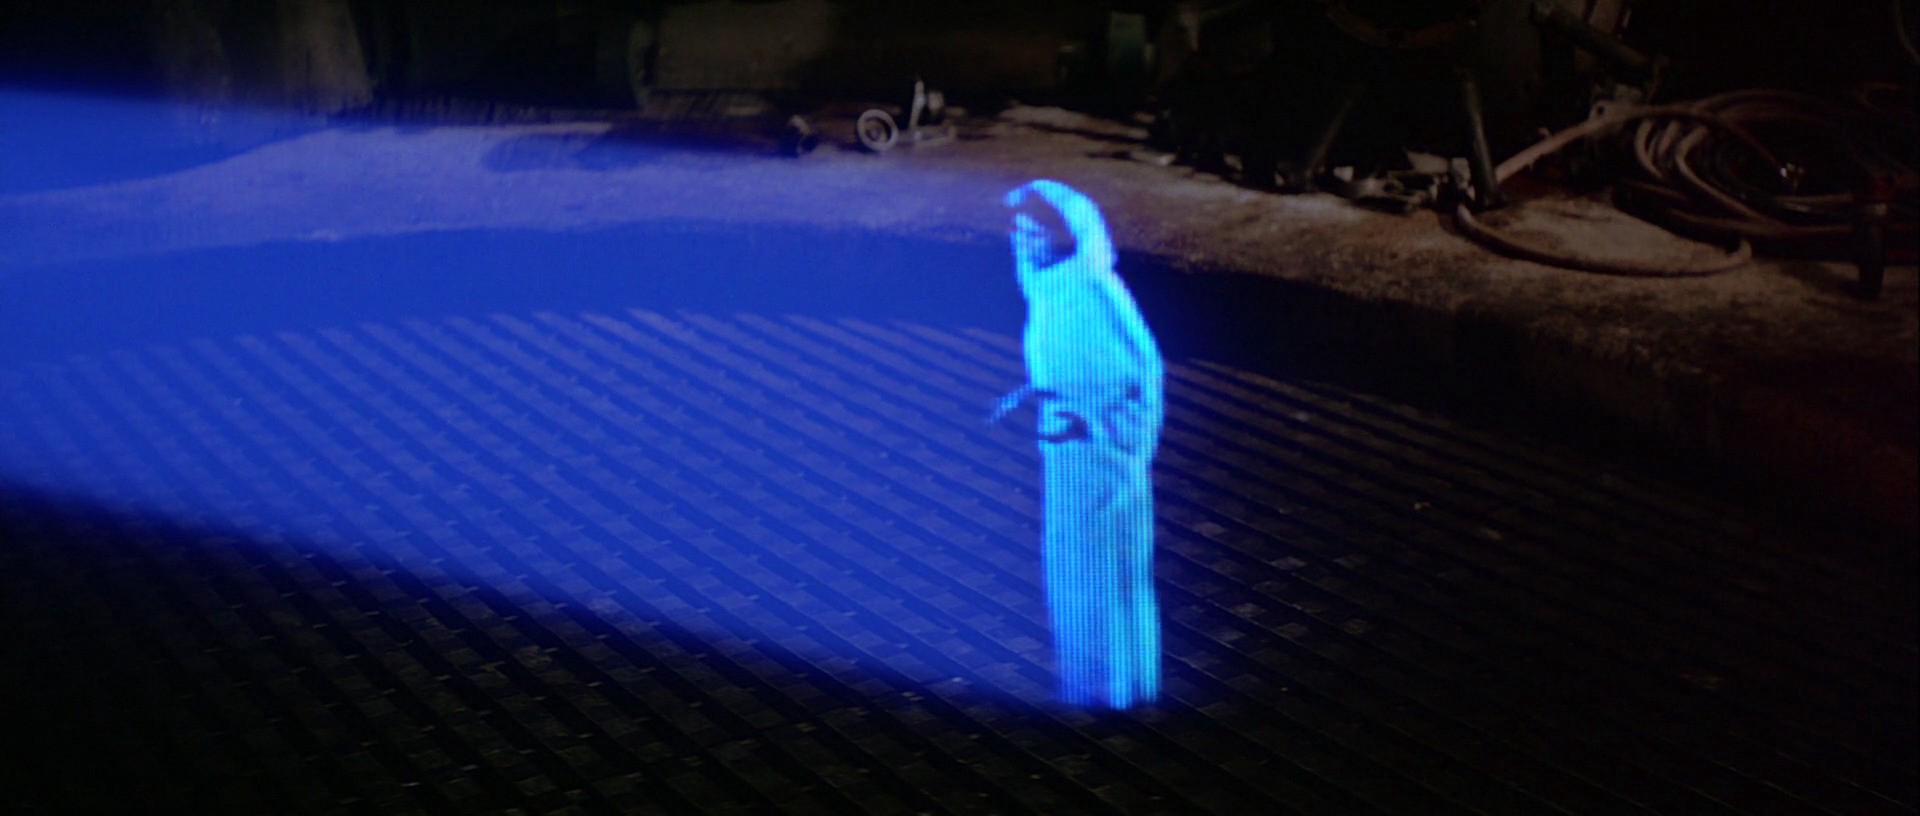 A very pixelated hologram of Leia